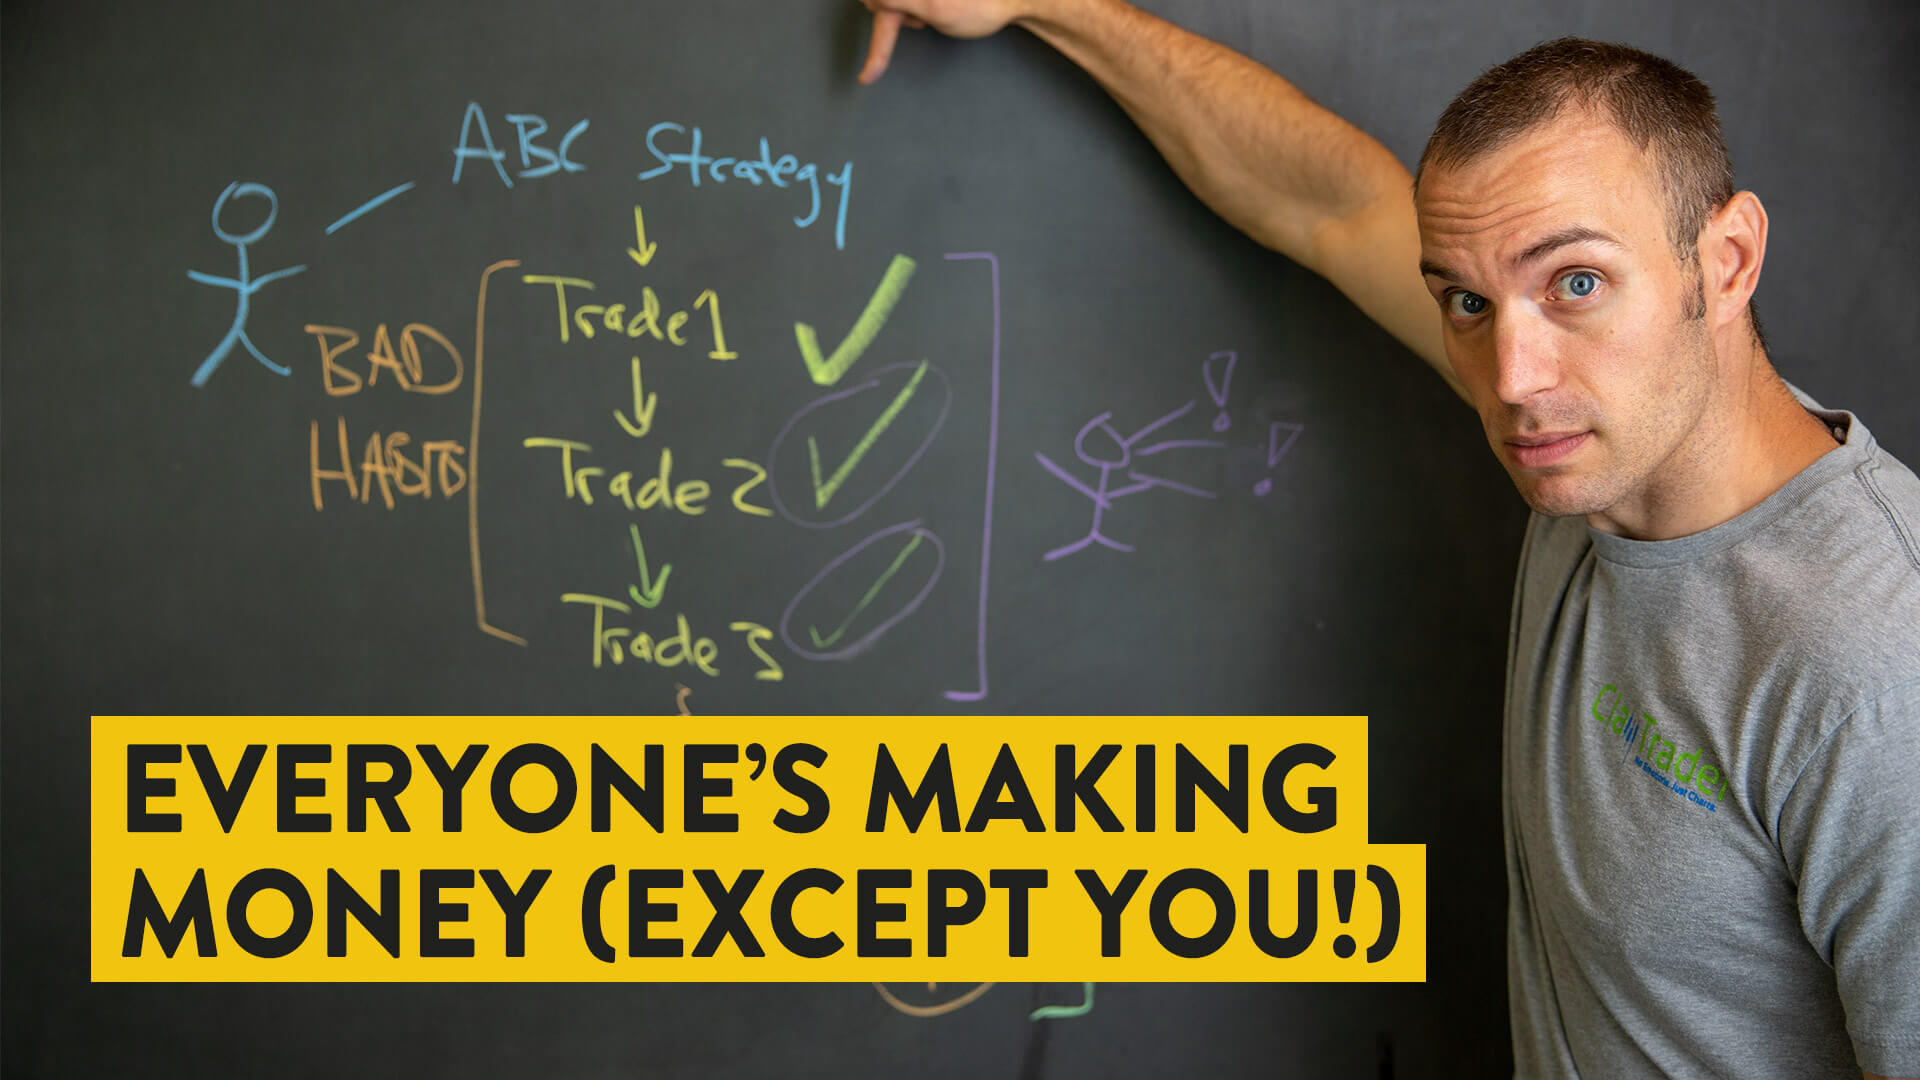 Everyone Makes Money With Penny Stocks... Except You! (why???)